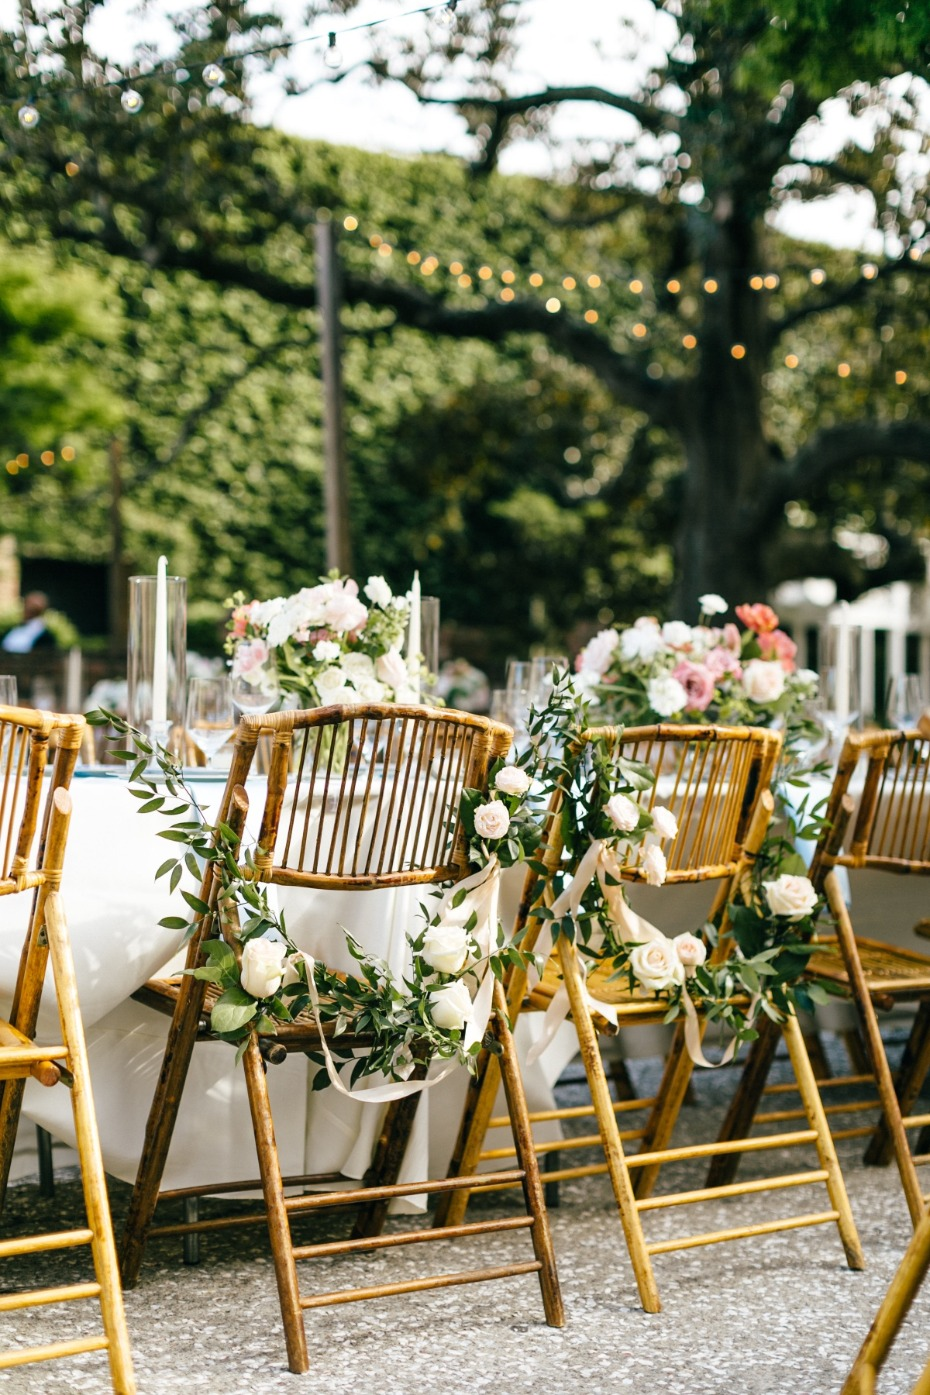 Wedding chairs covered in flowers